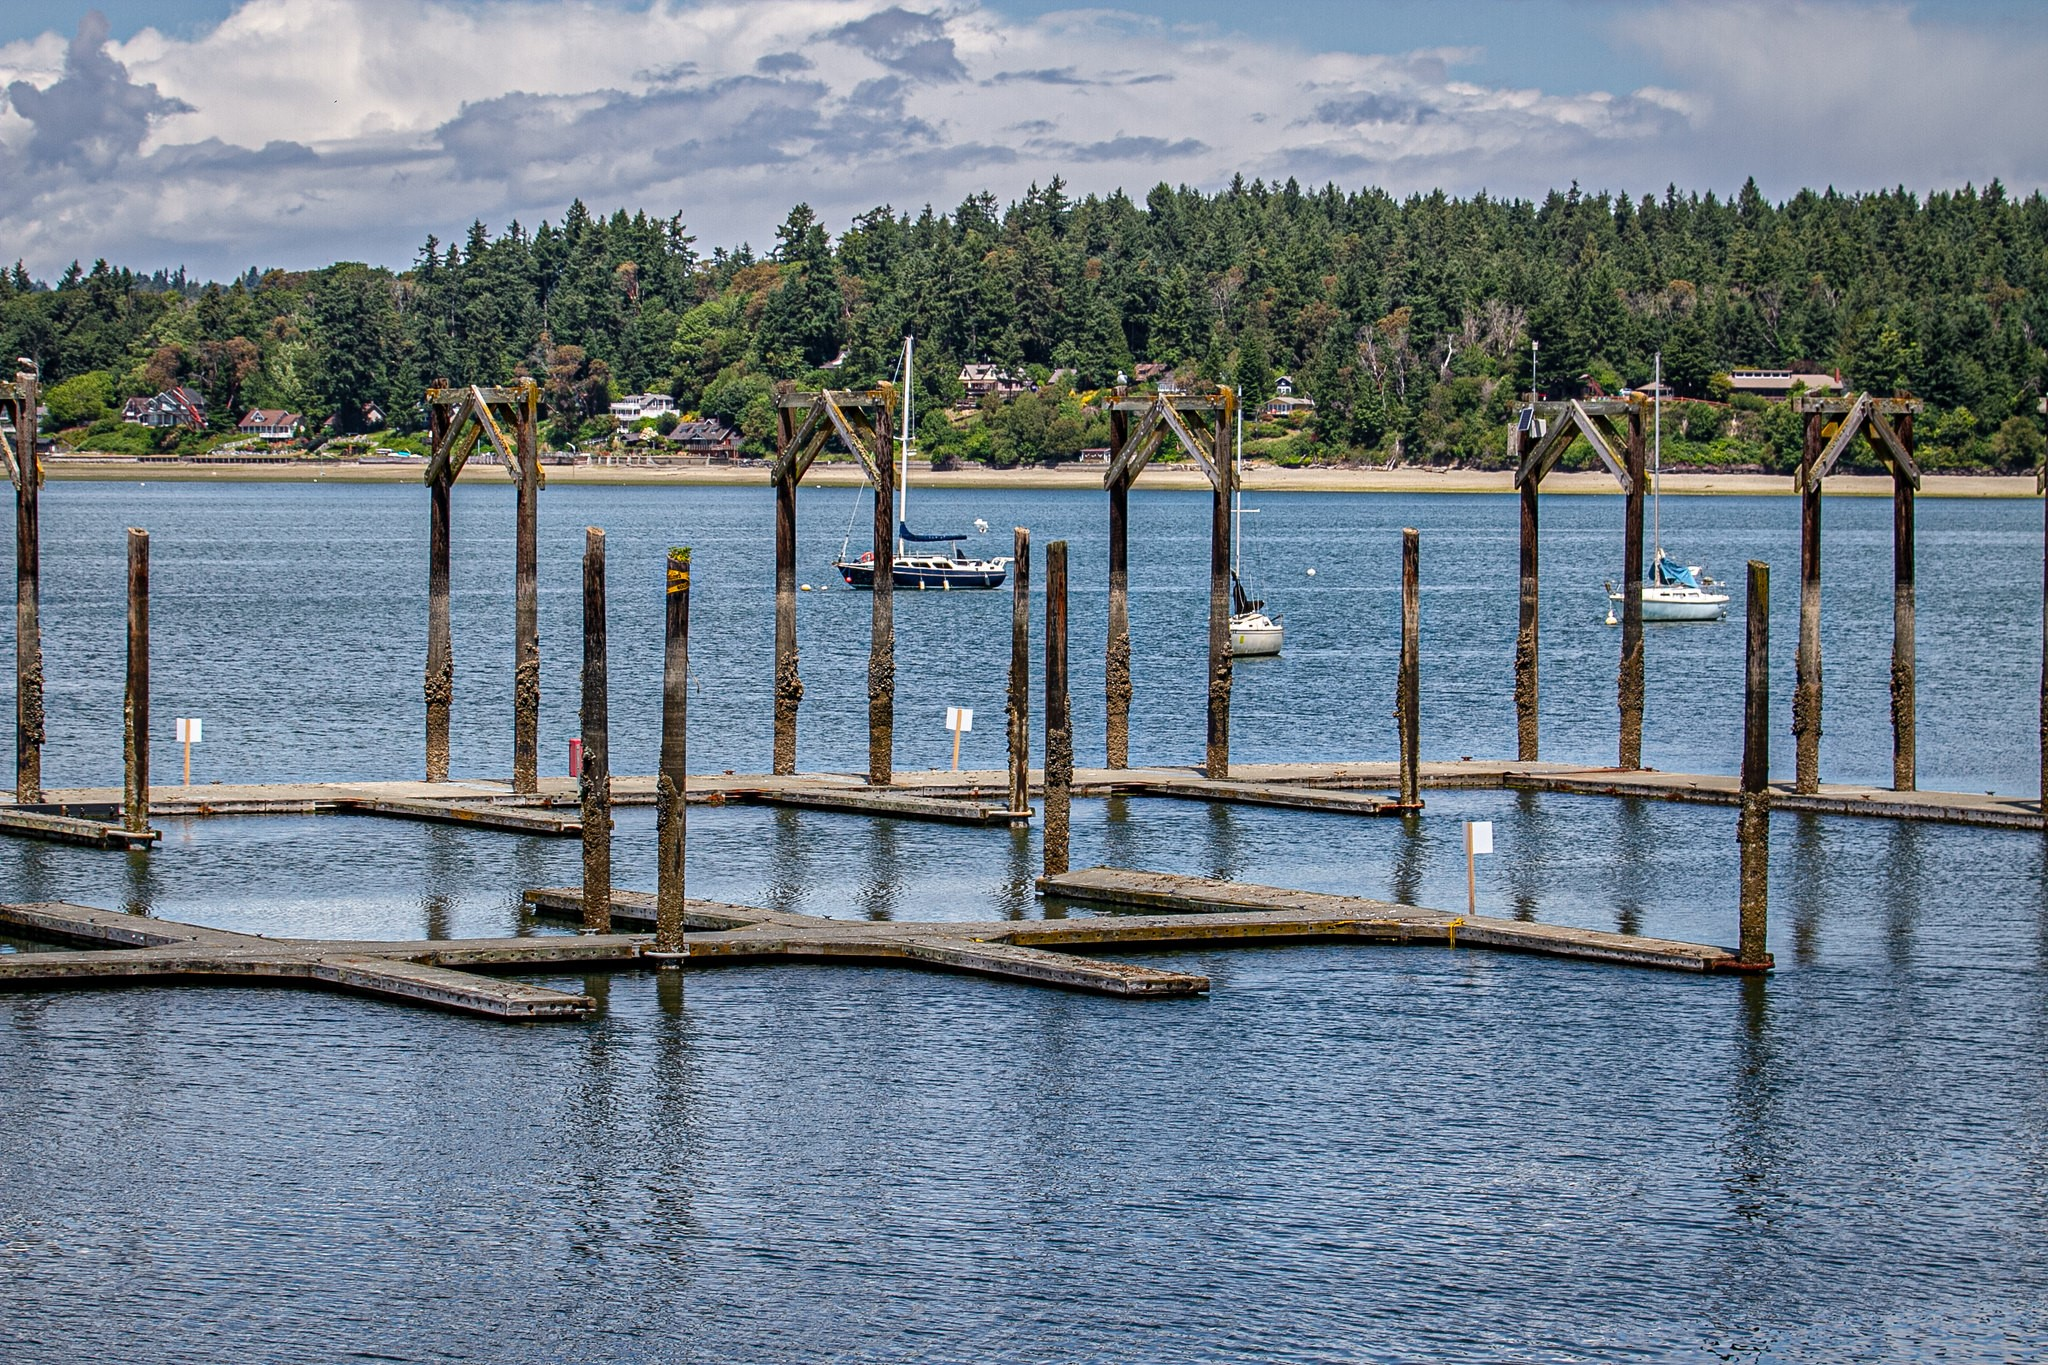 Dockton Park dock finger piers, closed as of March 2019.